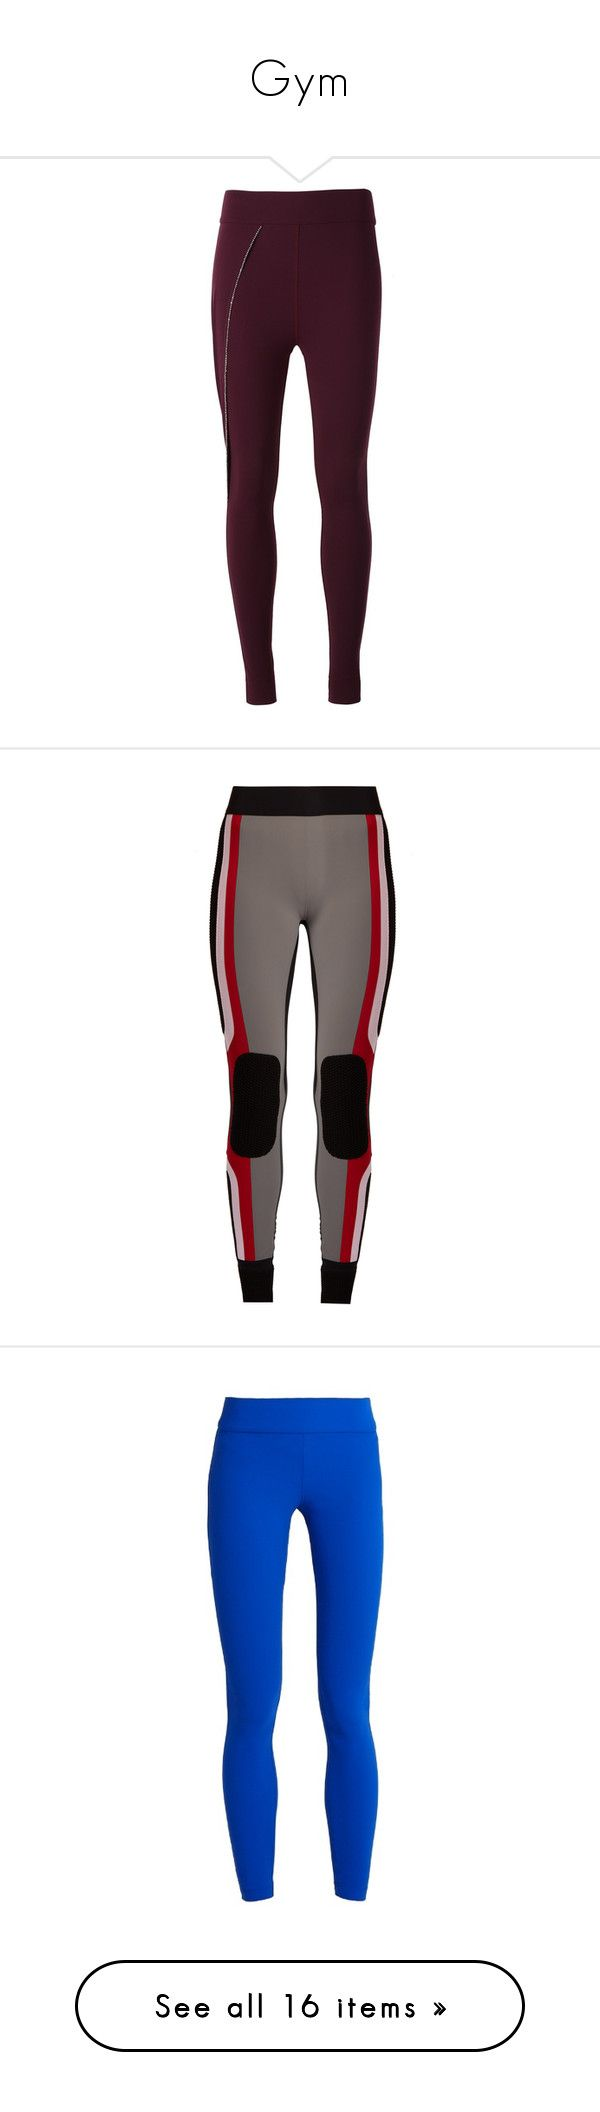 """""""Gym"""" by tynabrookler ❤ liked on Polyvore featuring pants, leggings, purple, legging pants, lycra pants, embellished pants, spandex leggings, spandex pants, activewear and activewear pants"""